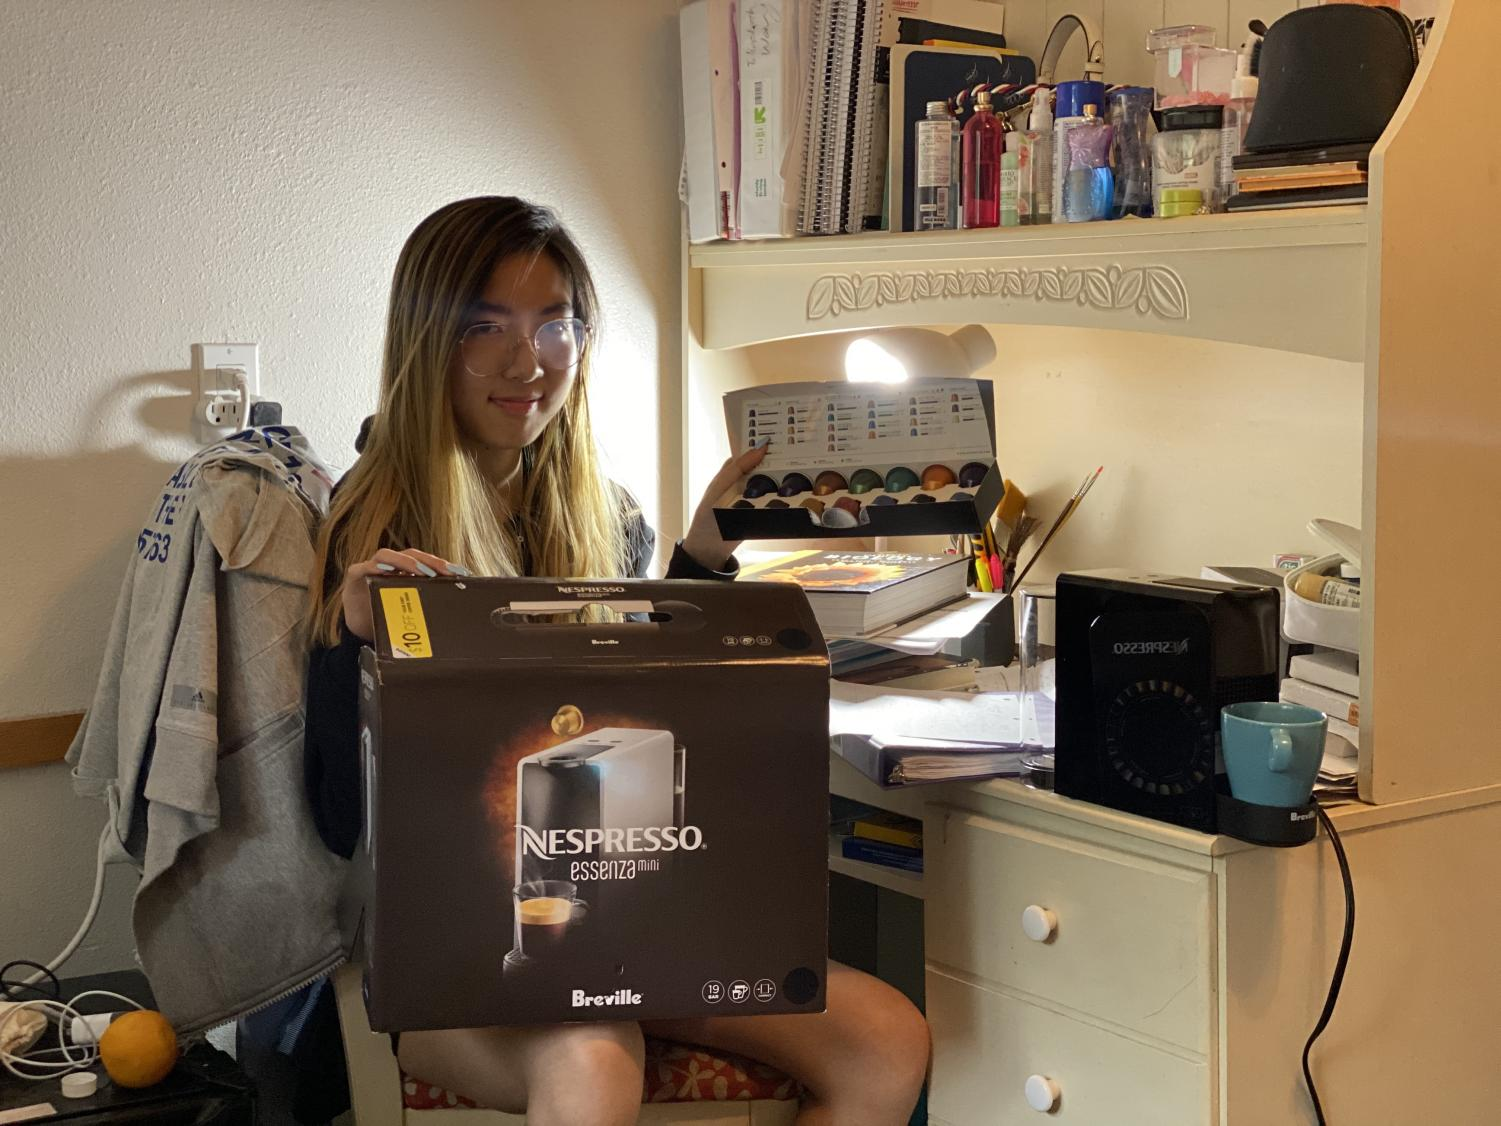 Students embrace a caffeinated culture